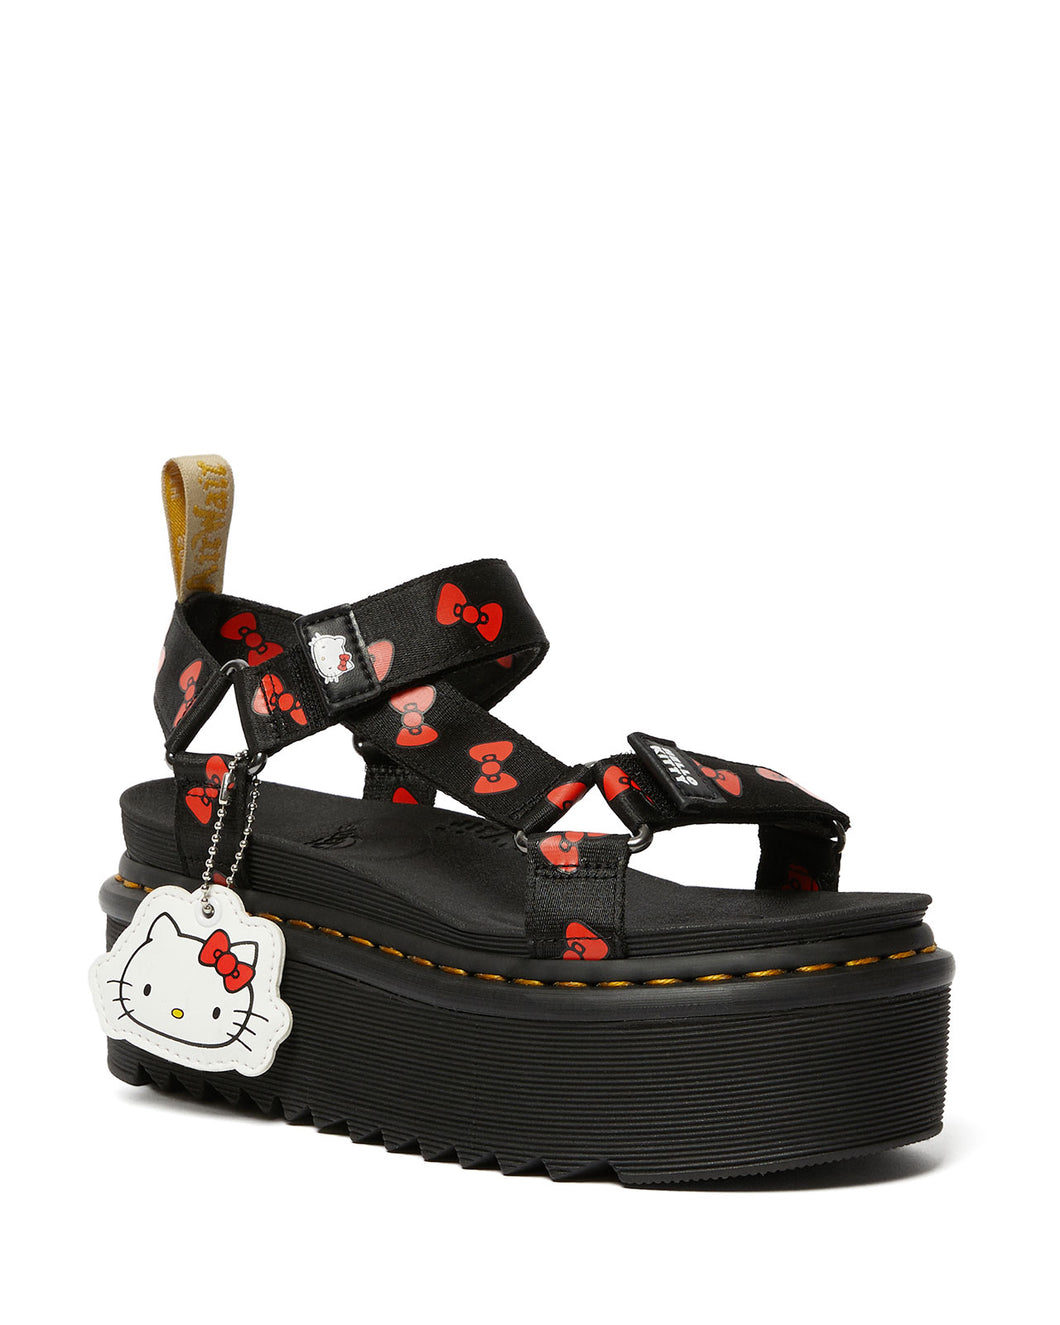 Vegan Hello Kitty Sandal